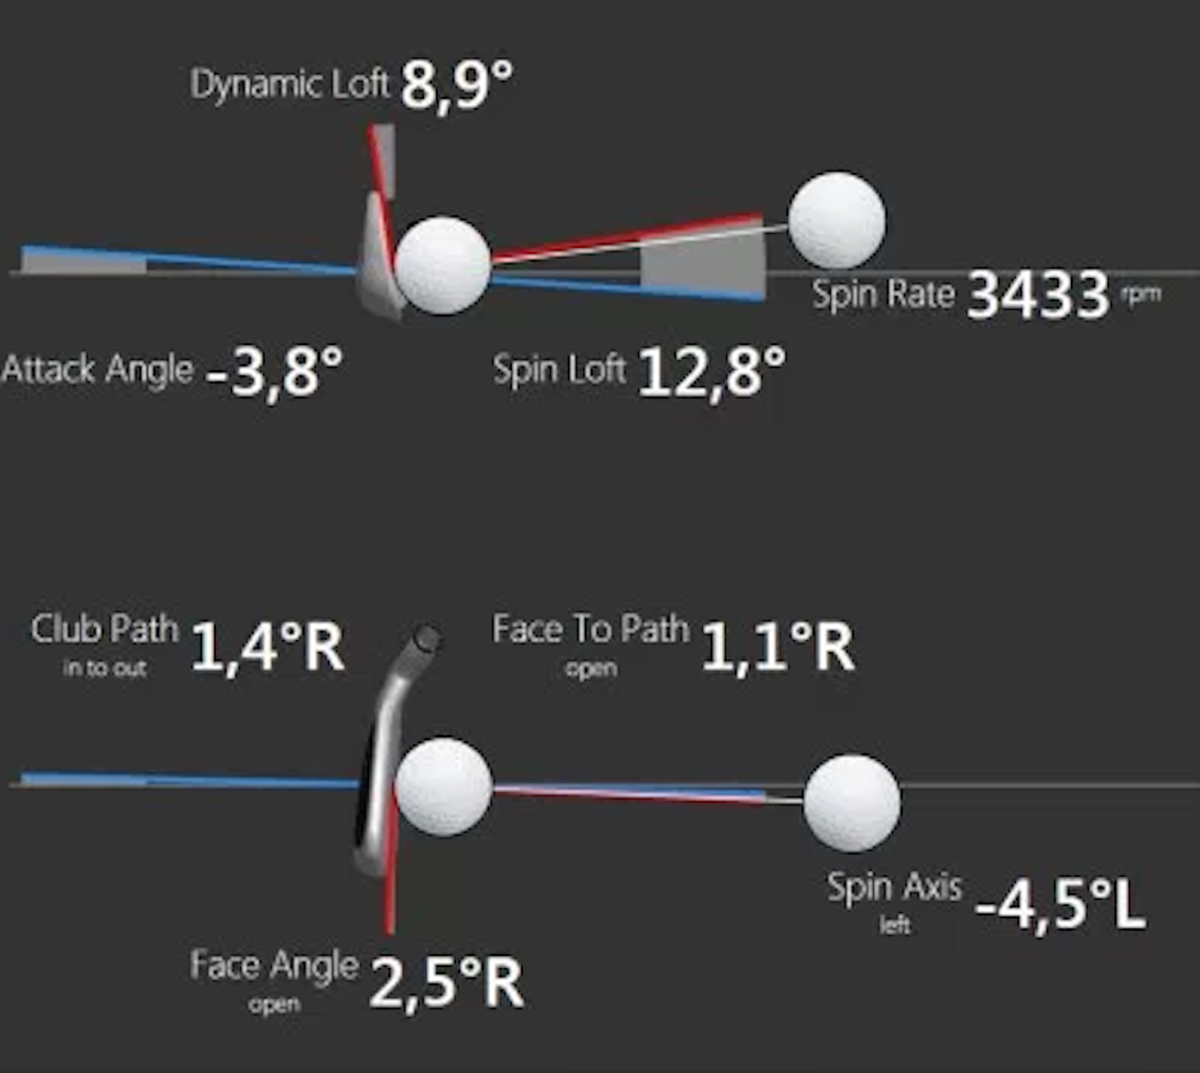 [object object] How Swing Path Affects Your Ball Flight Screen Shot 2018 02 14 at 10